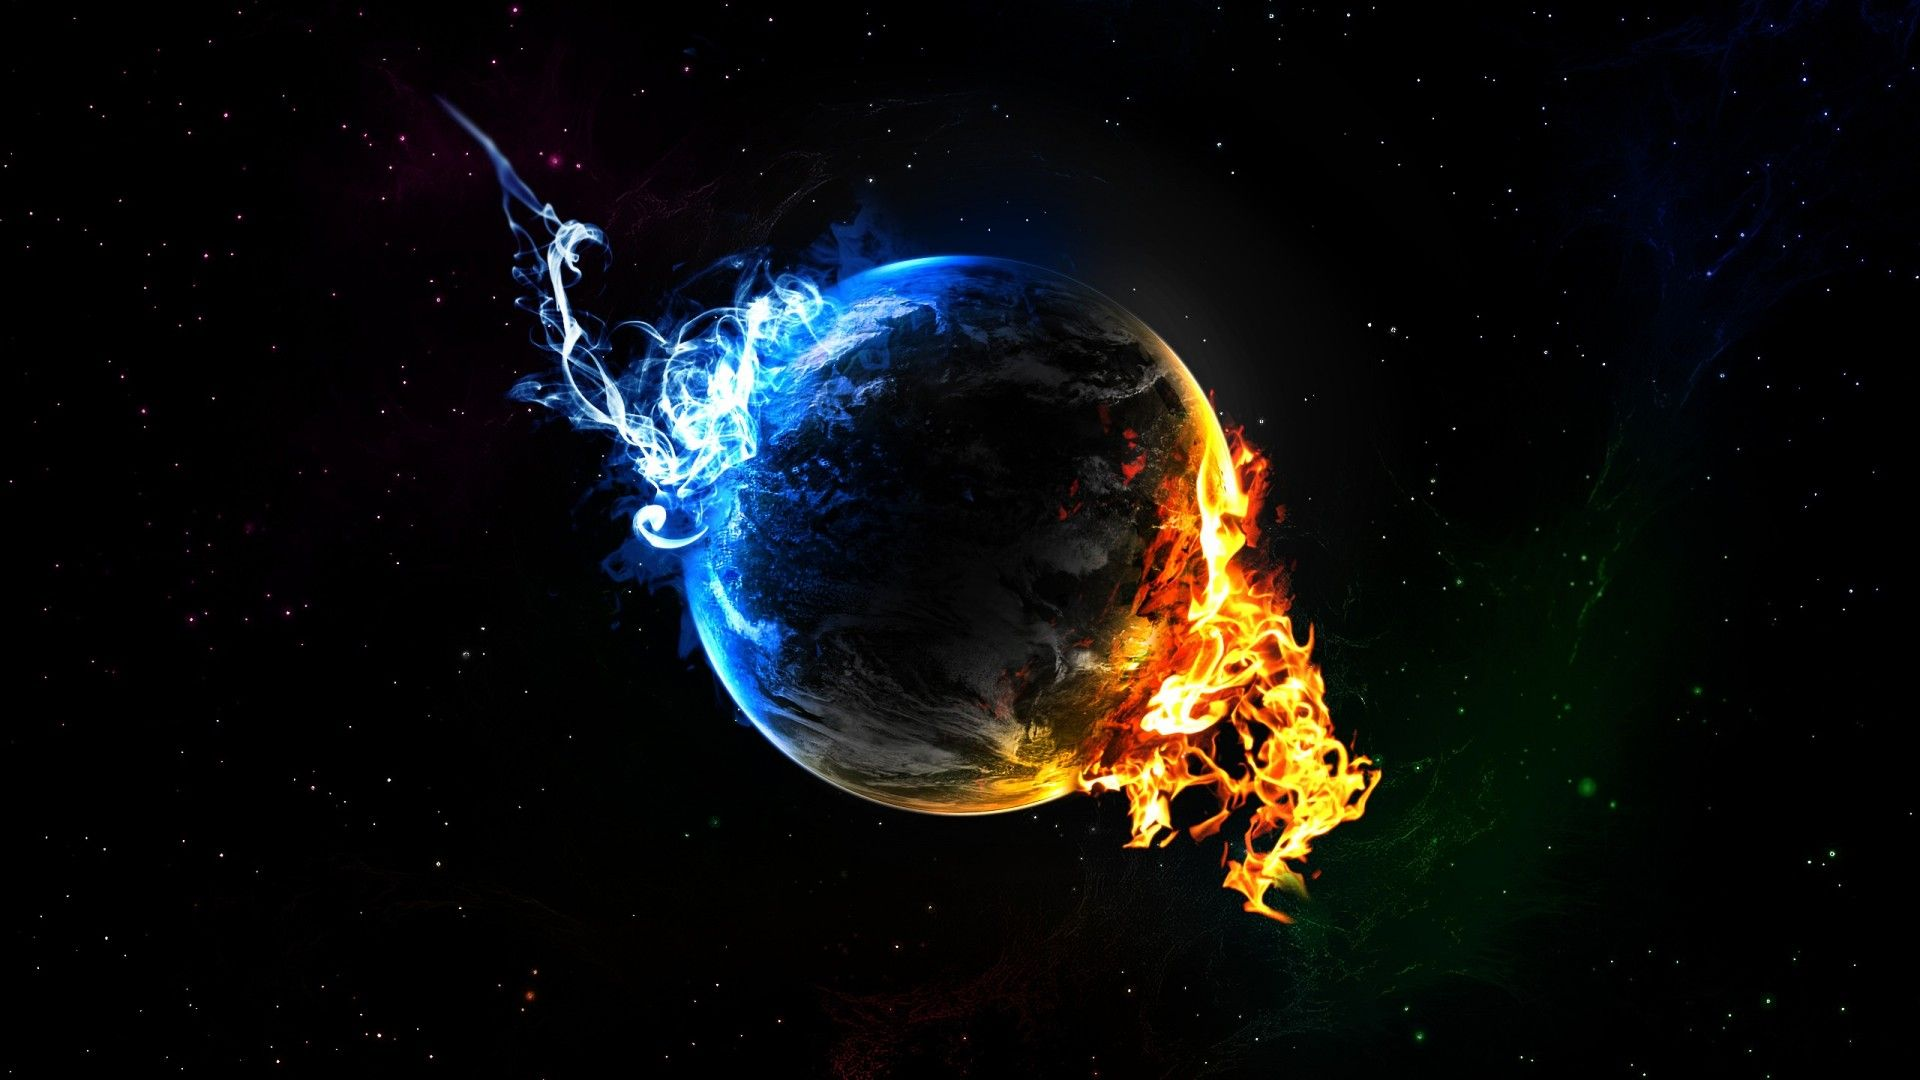 Cool desktop backgrounds moving wallpaper planets - Cool moving wallpapers for computer ...